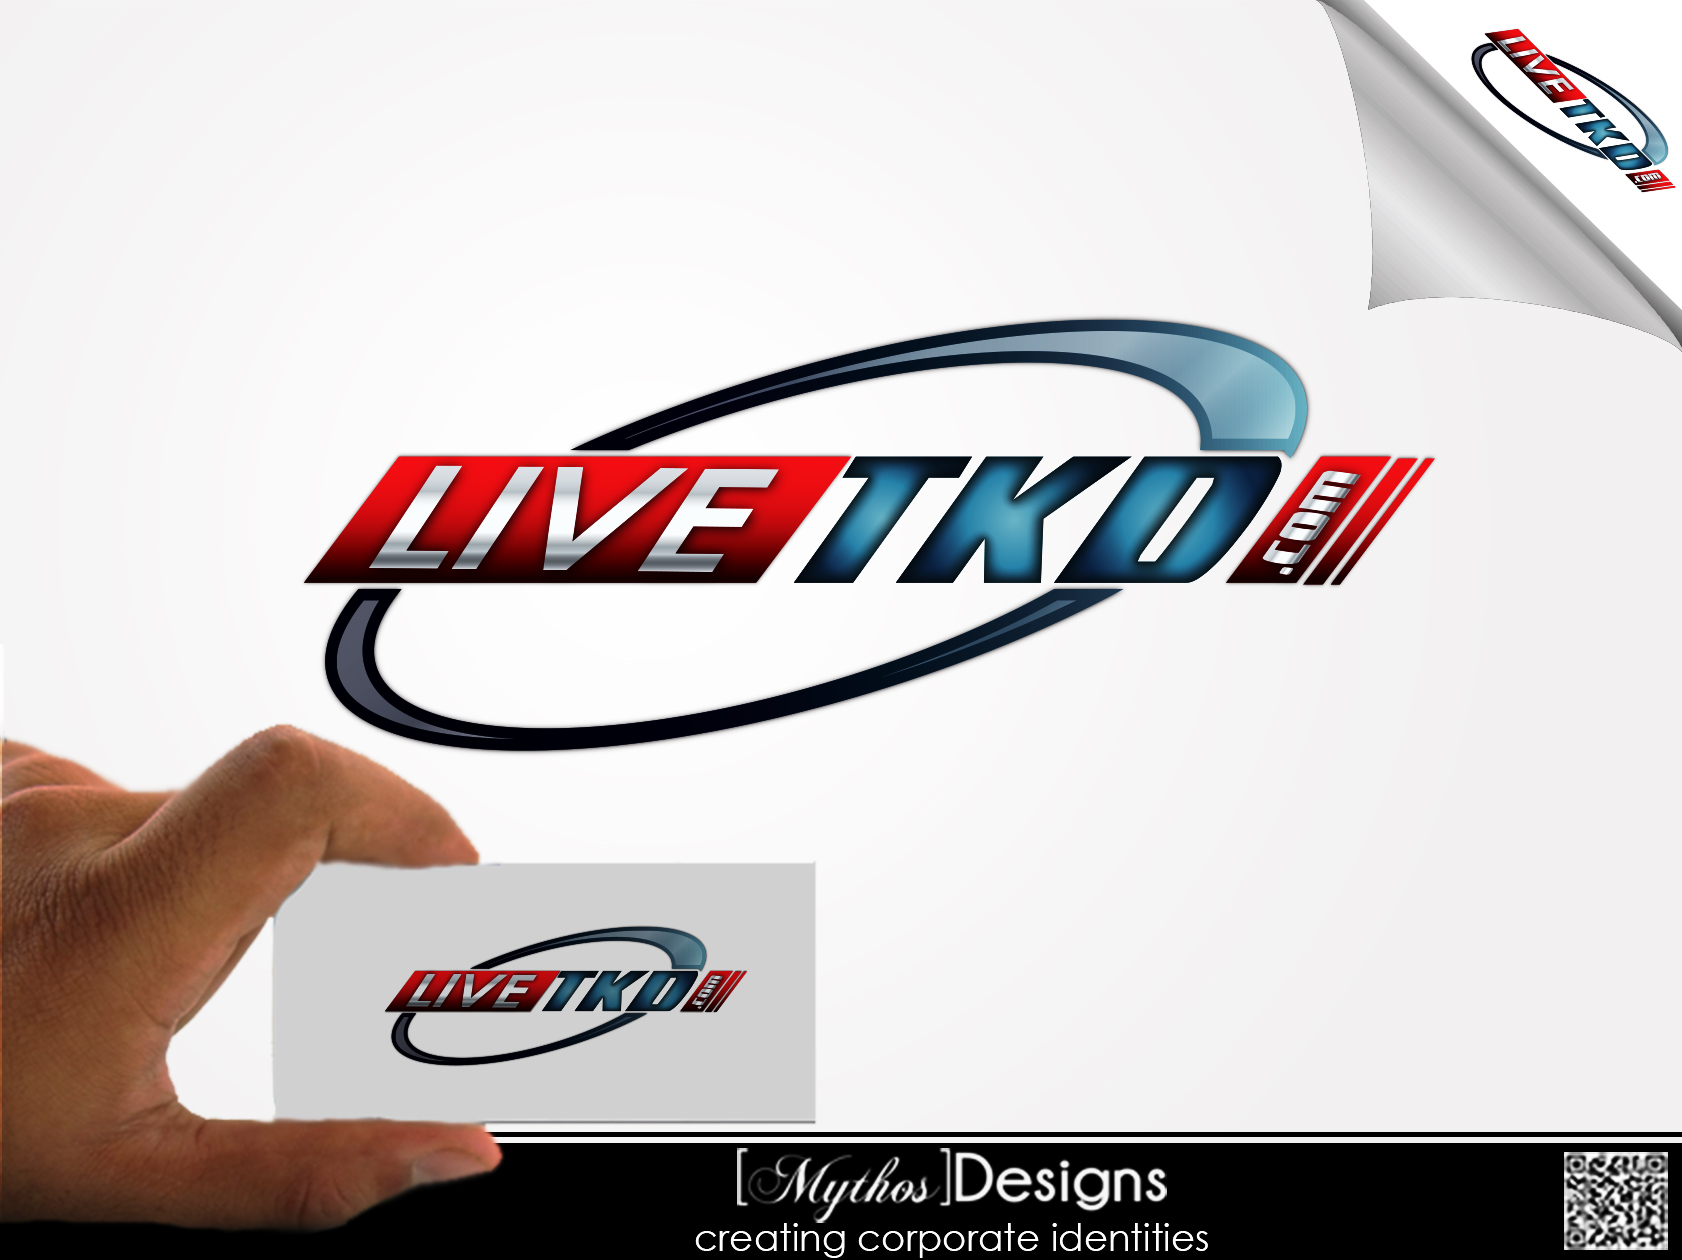 Logo Design by Mythos Designs - Entry No. 203 in the Logo Design Contest New Logo Design for LiveTKD.com.